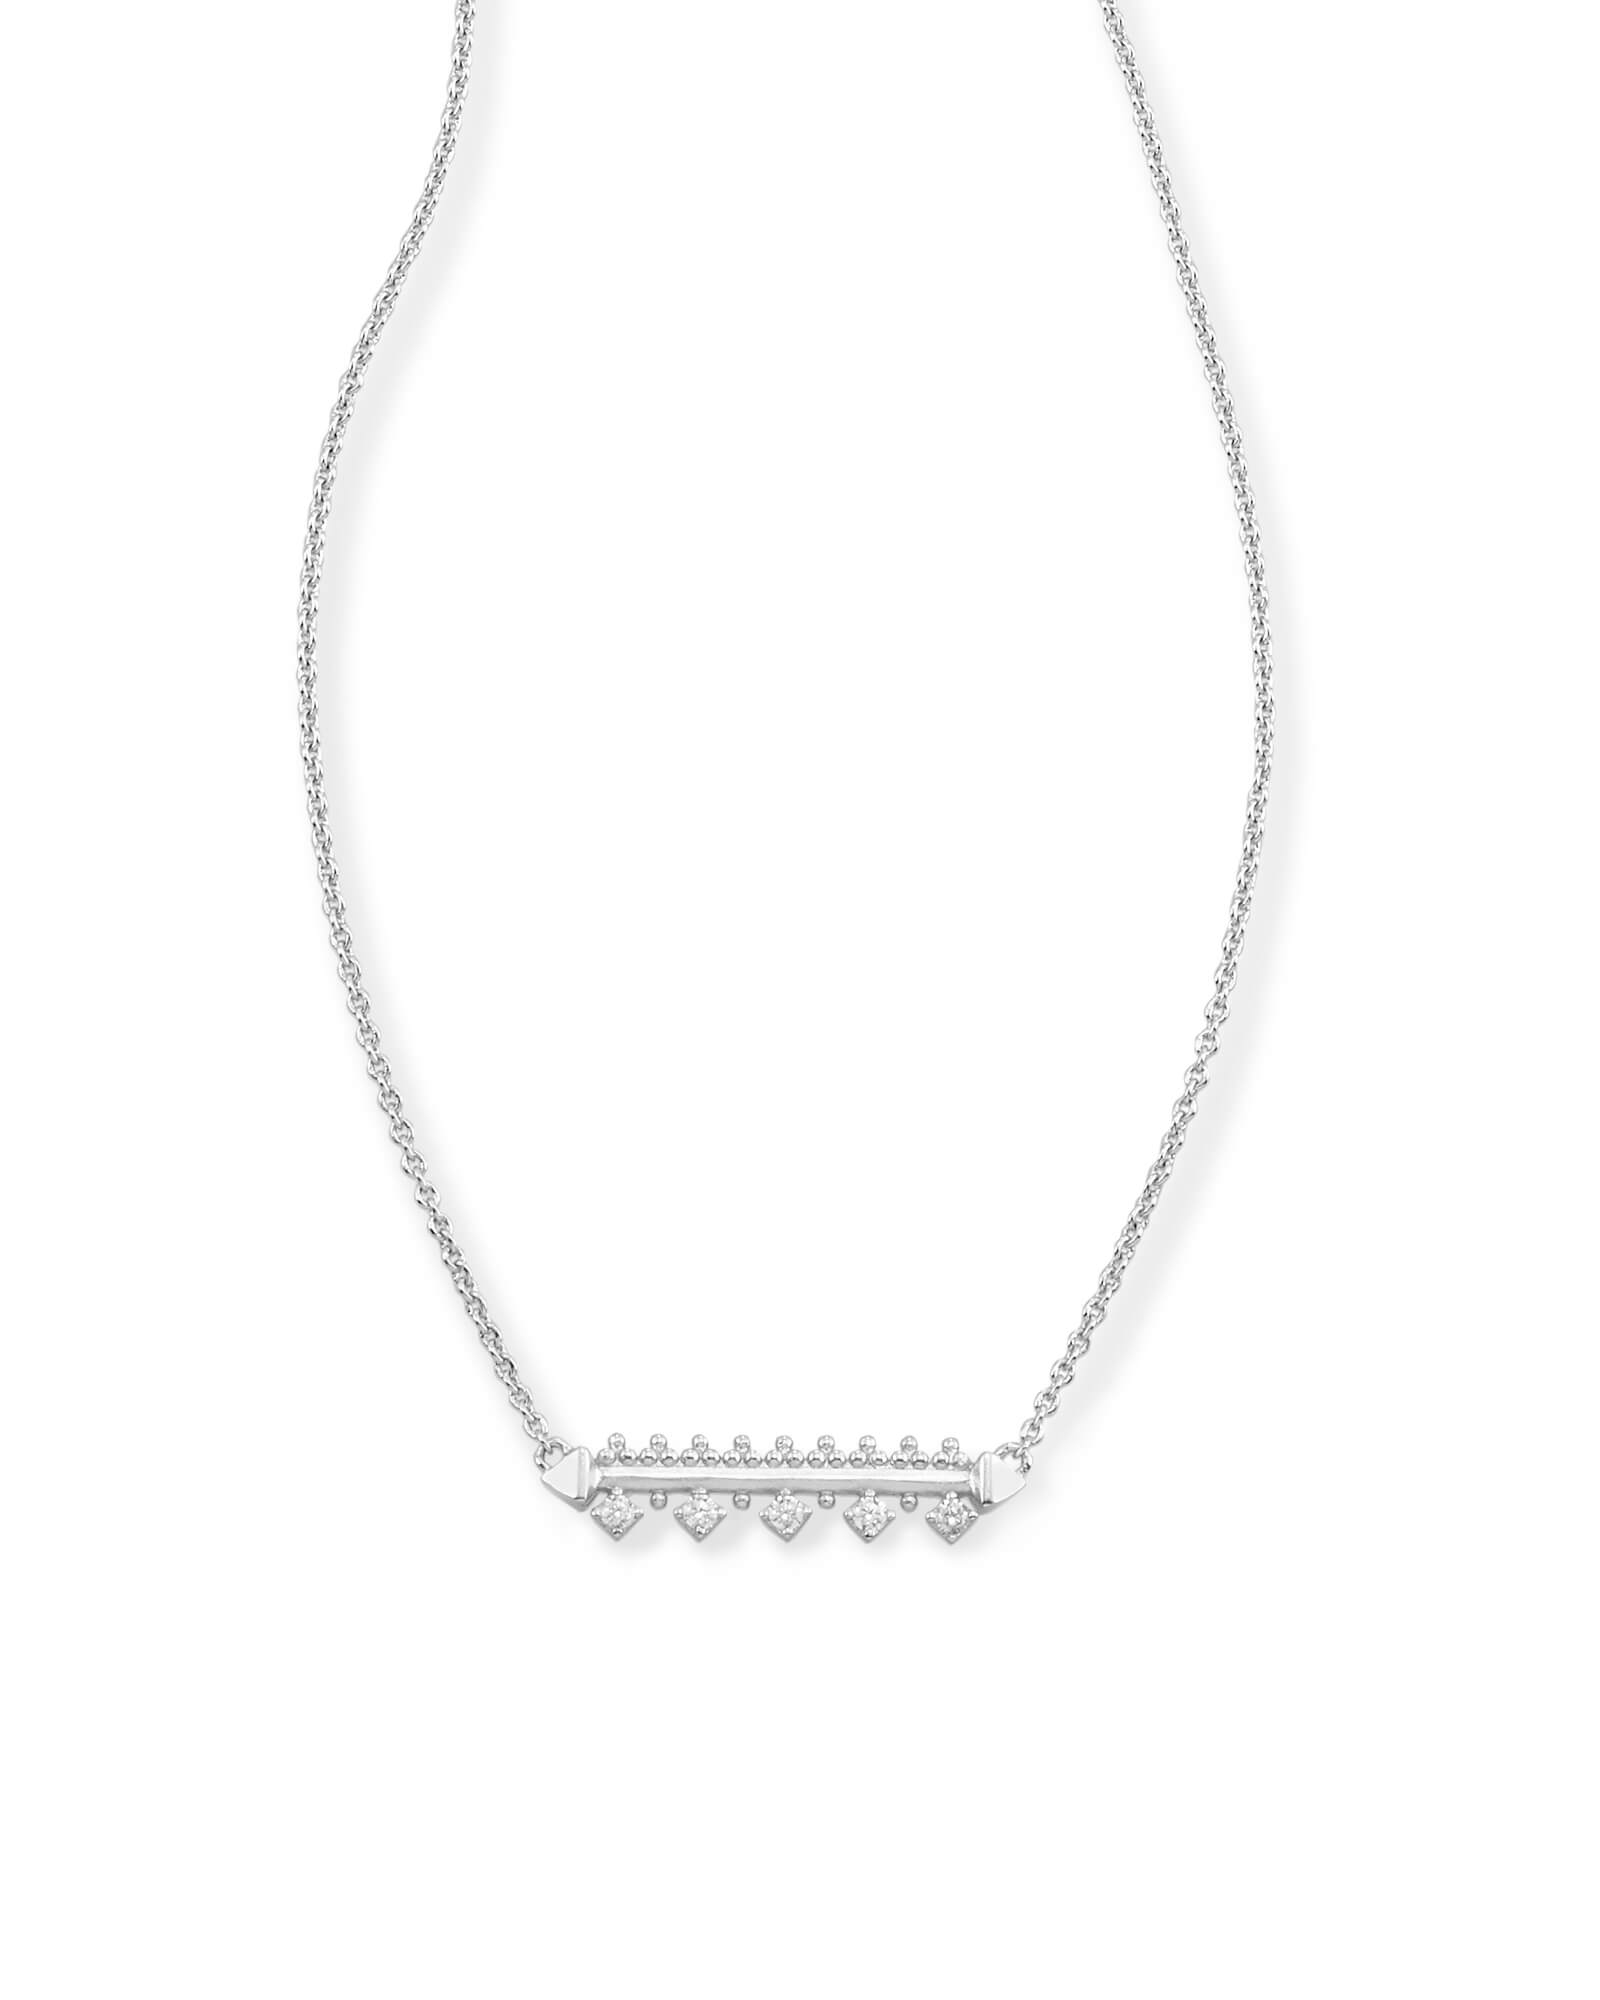 Anissa Bar Pendant Necklace in Silver